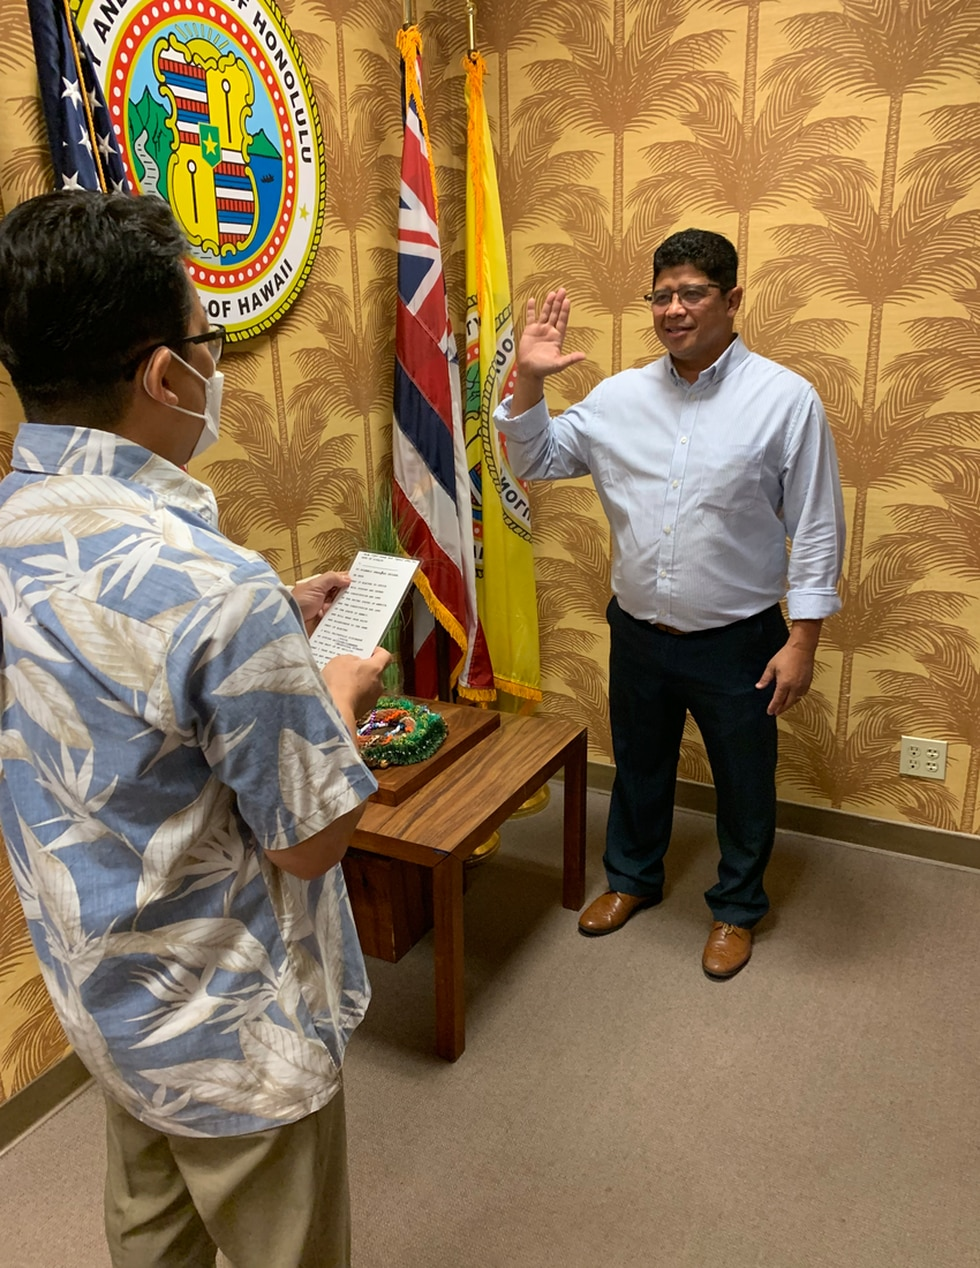 Local comedian Augie T also filed papers to run for city council on Tuesday.